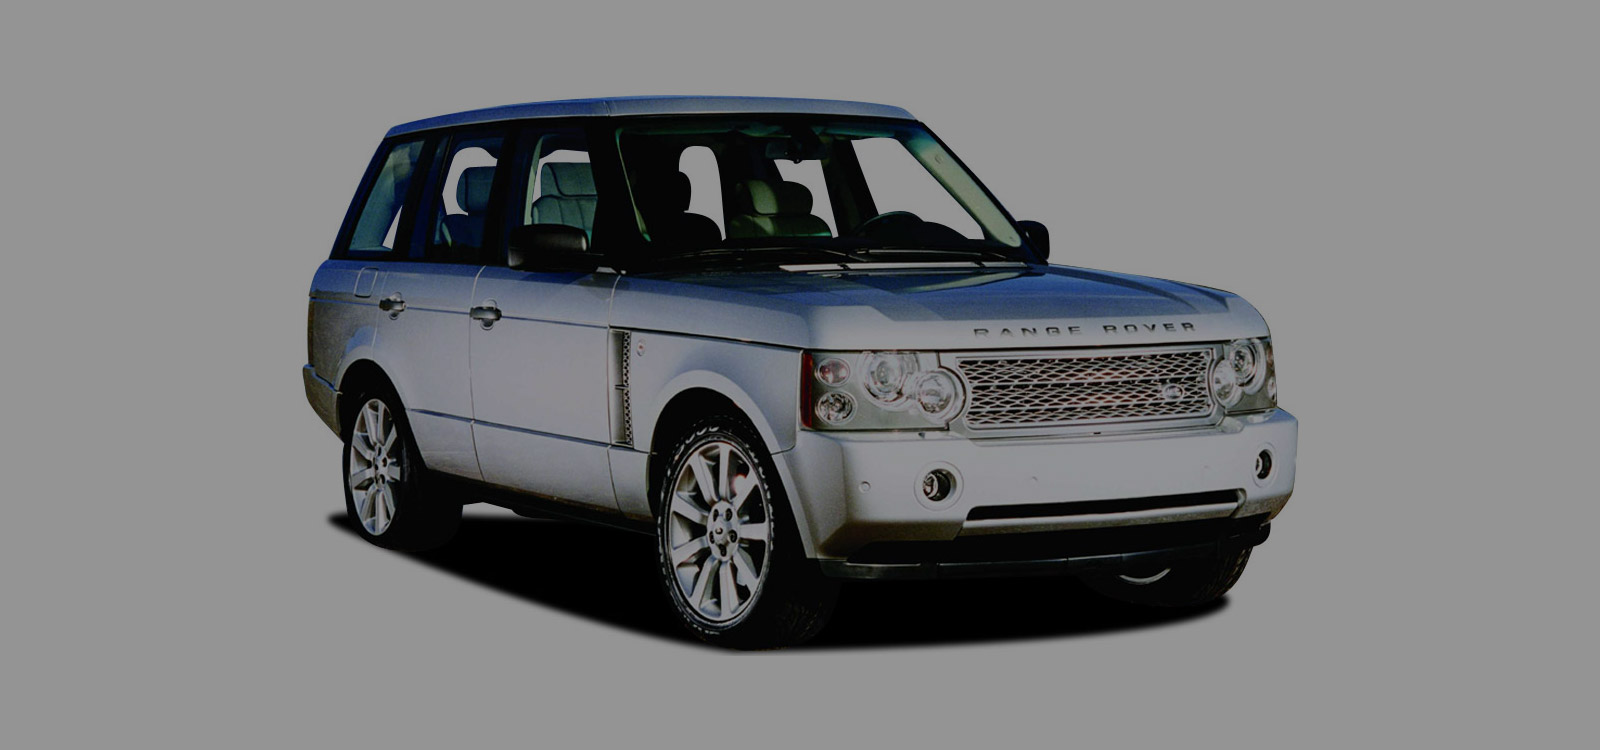 locator portland dealership landrover rover or new land in dealer